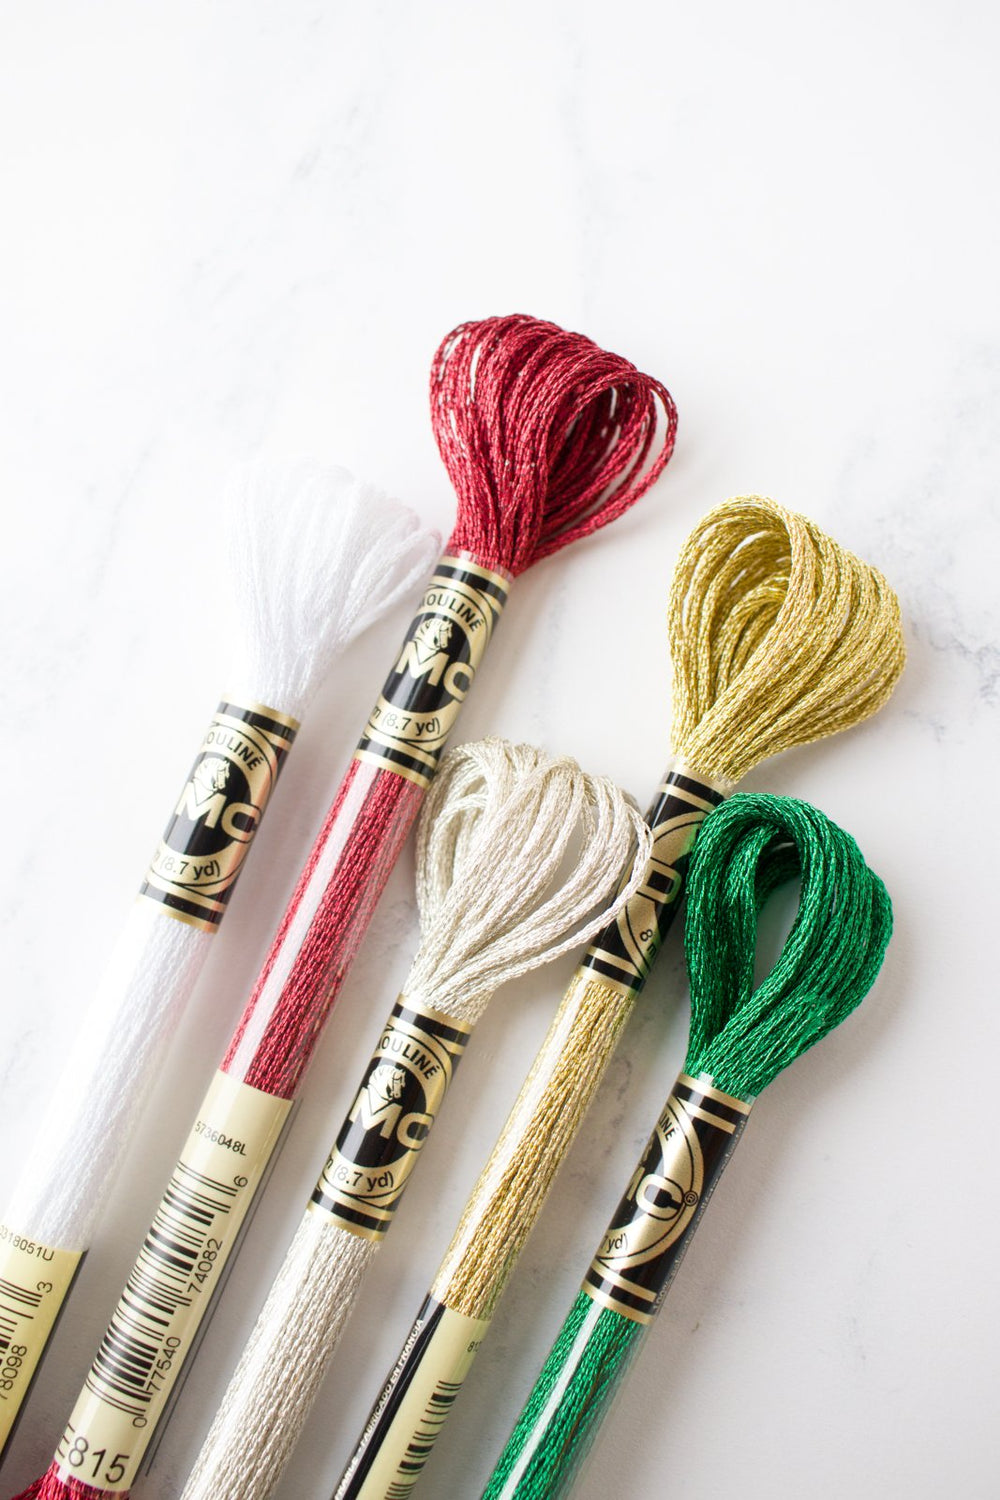 DMC Light Effects Metallic Embroidery Floss - Holiday Sparkle Pack